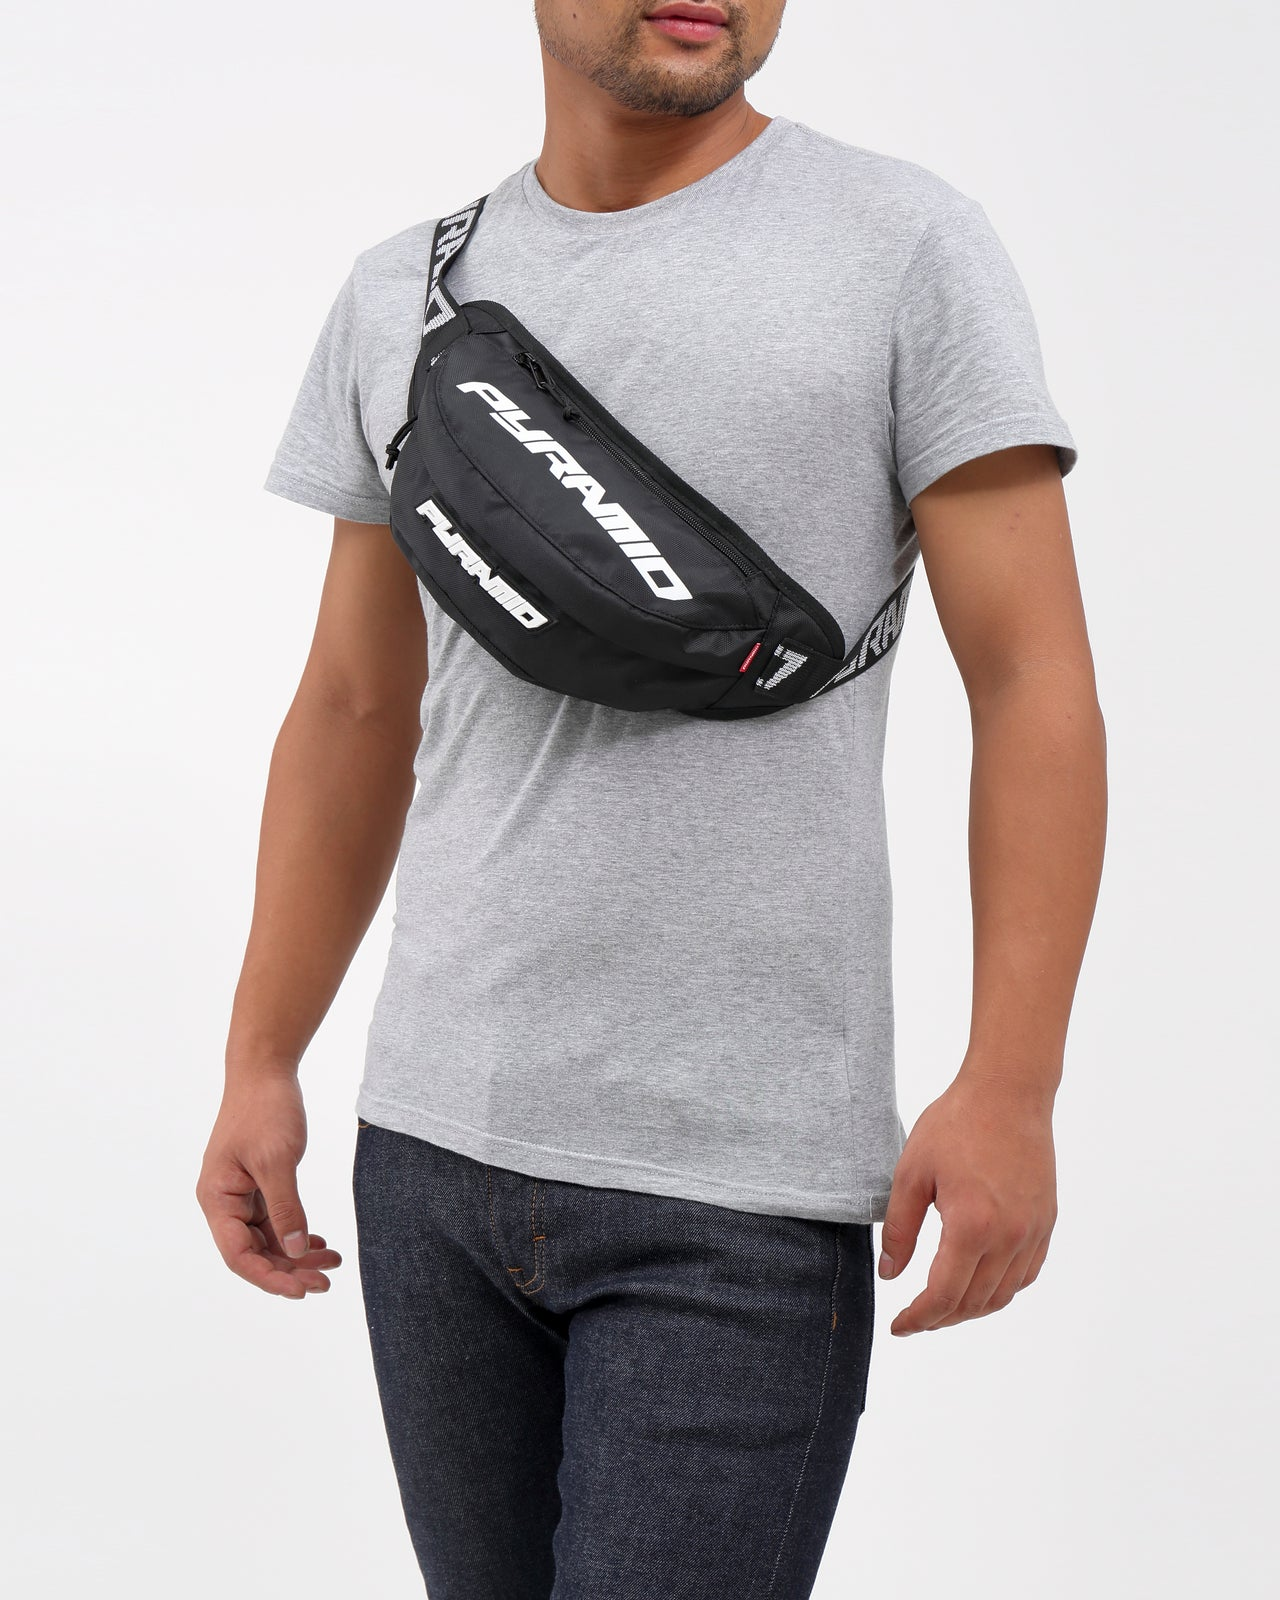 BIG PYRAMID WAIST BAG - Color: Black